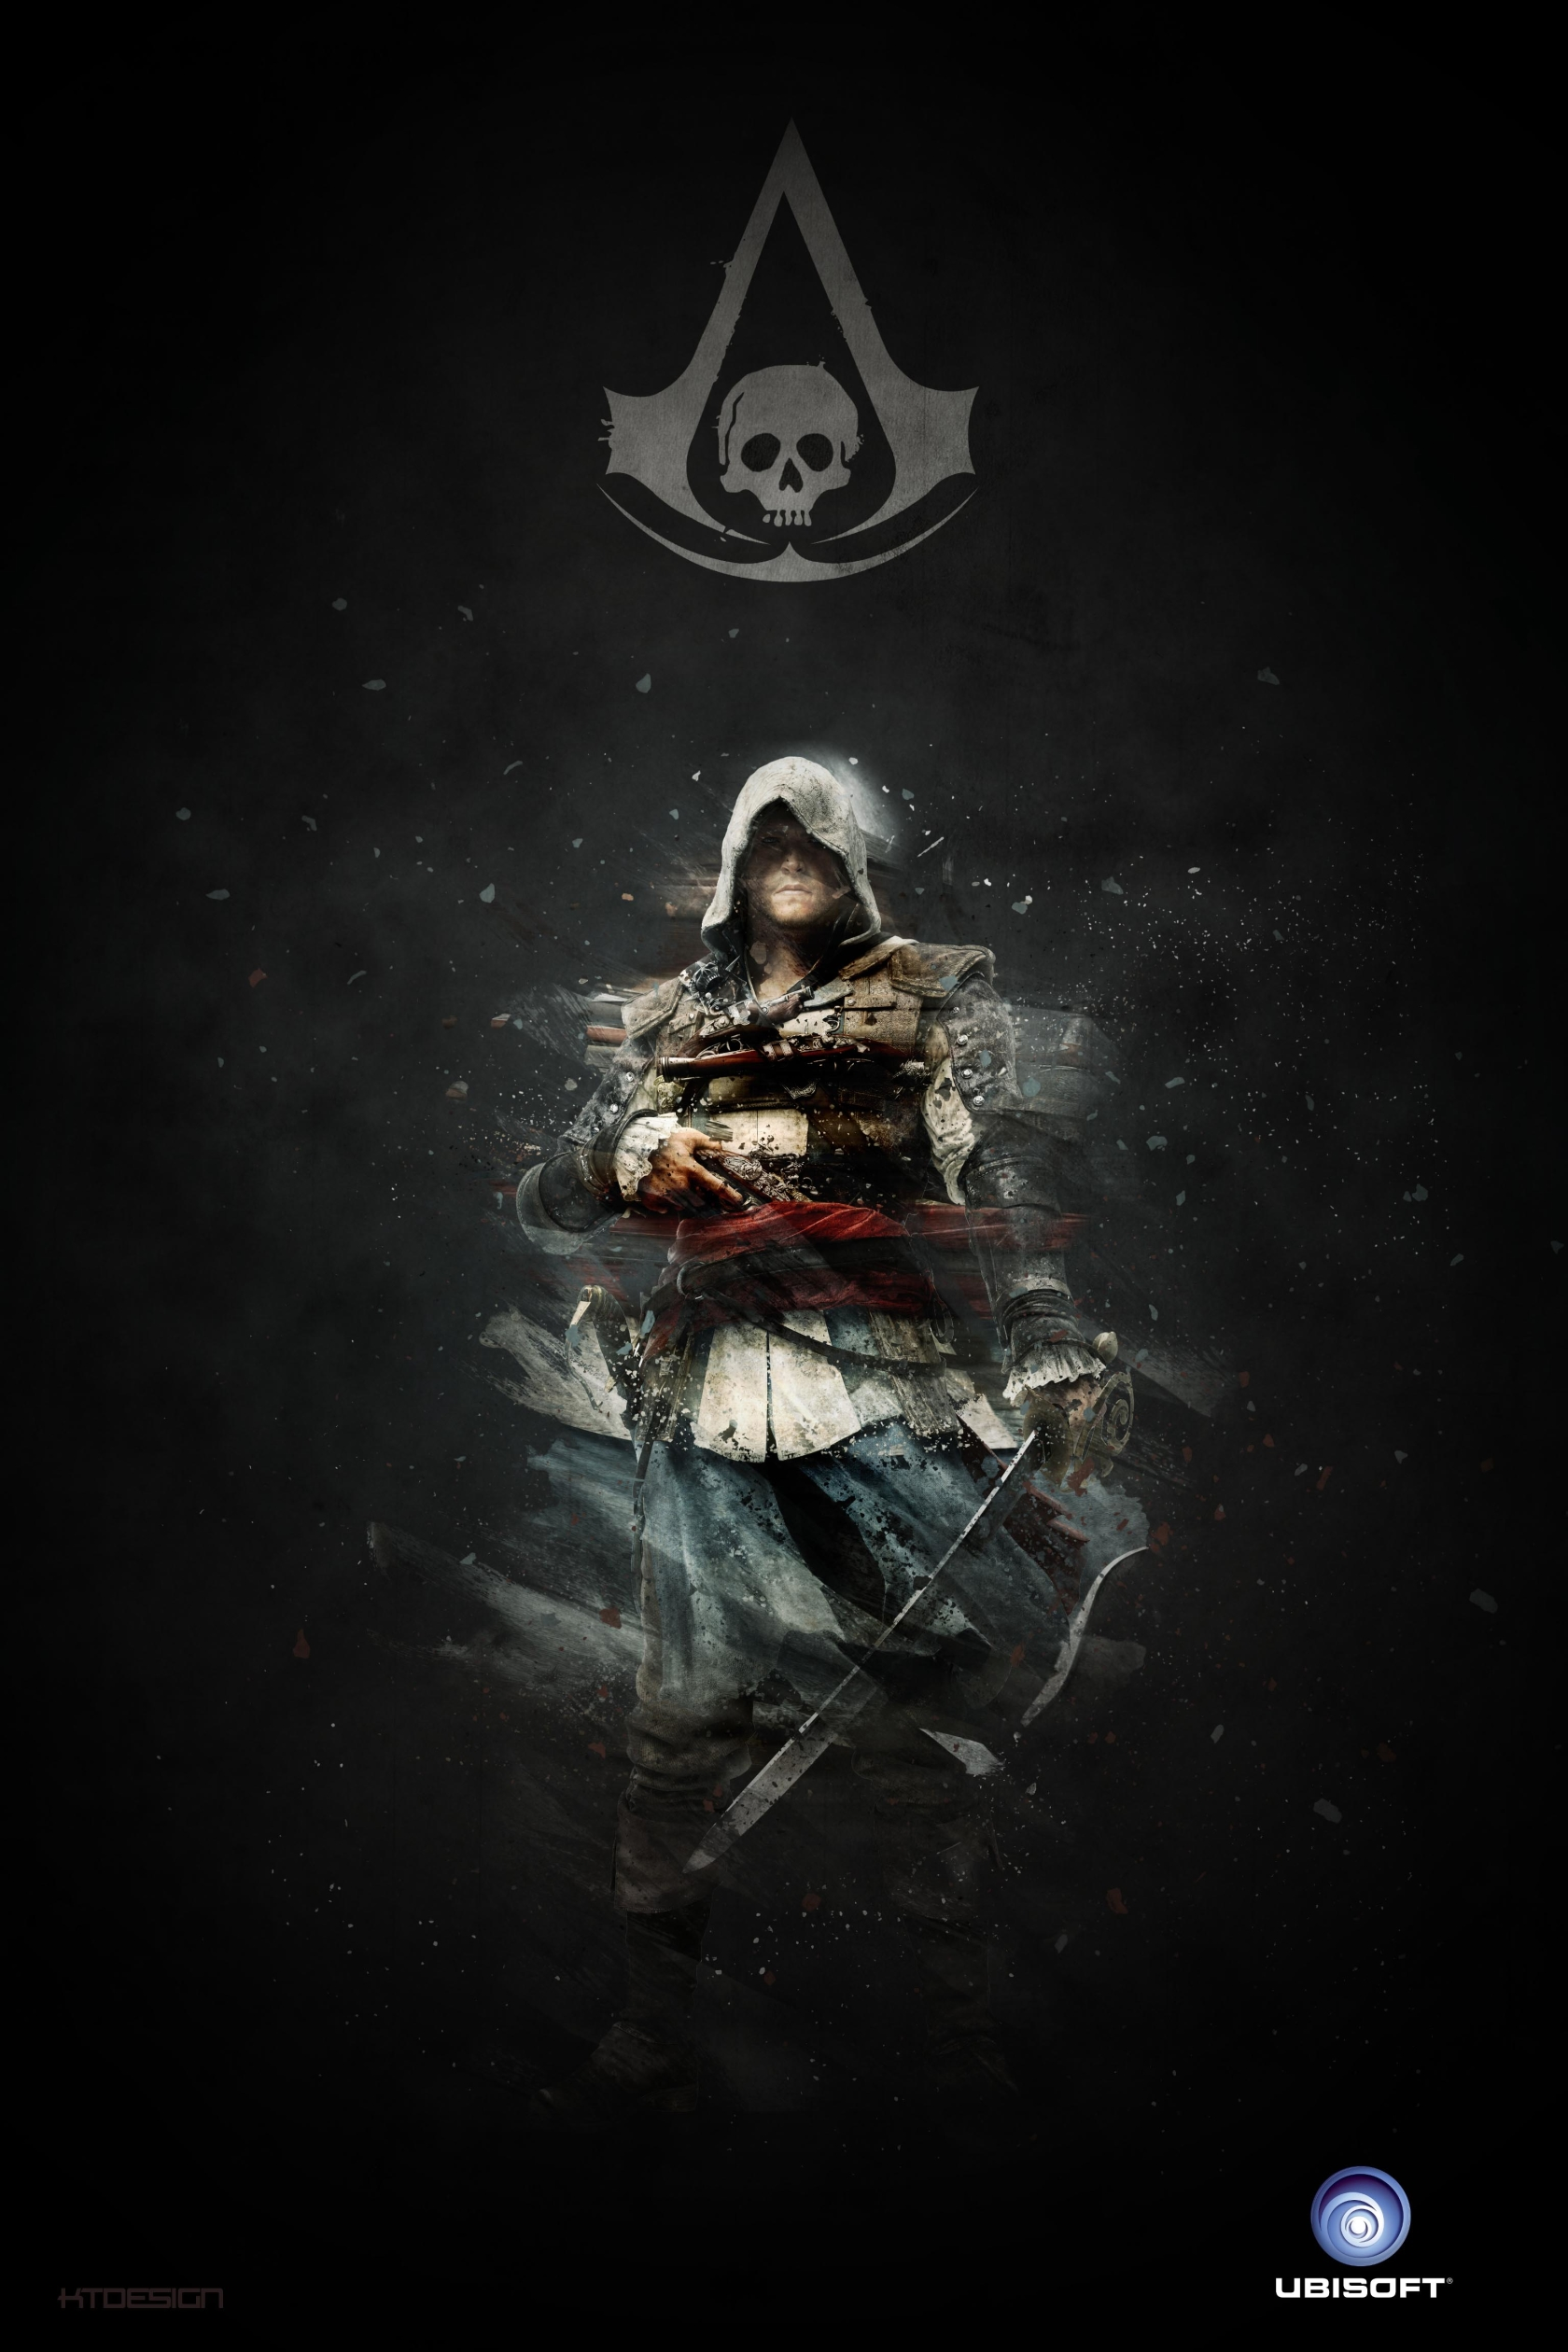 Assassins Creed4 Hd Gallery Wallpaper And Free Download